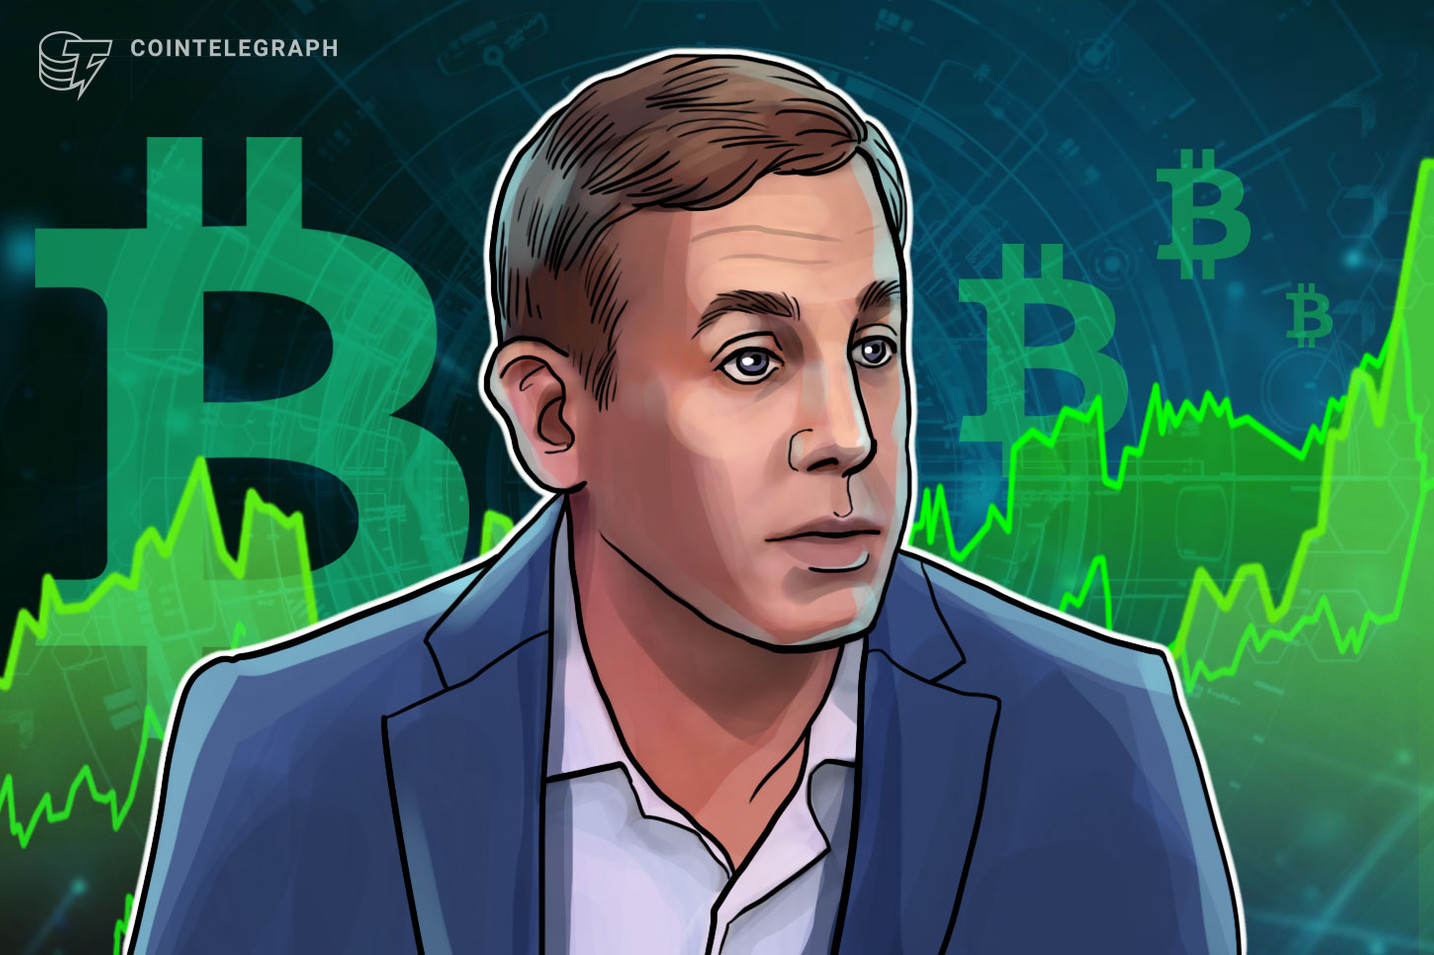 Susquehanna's Digital Asset Head Bart Smith: Bitcoin Is Certainly Speculative and Risky